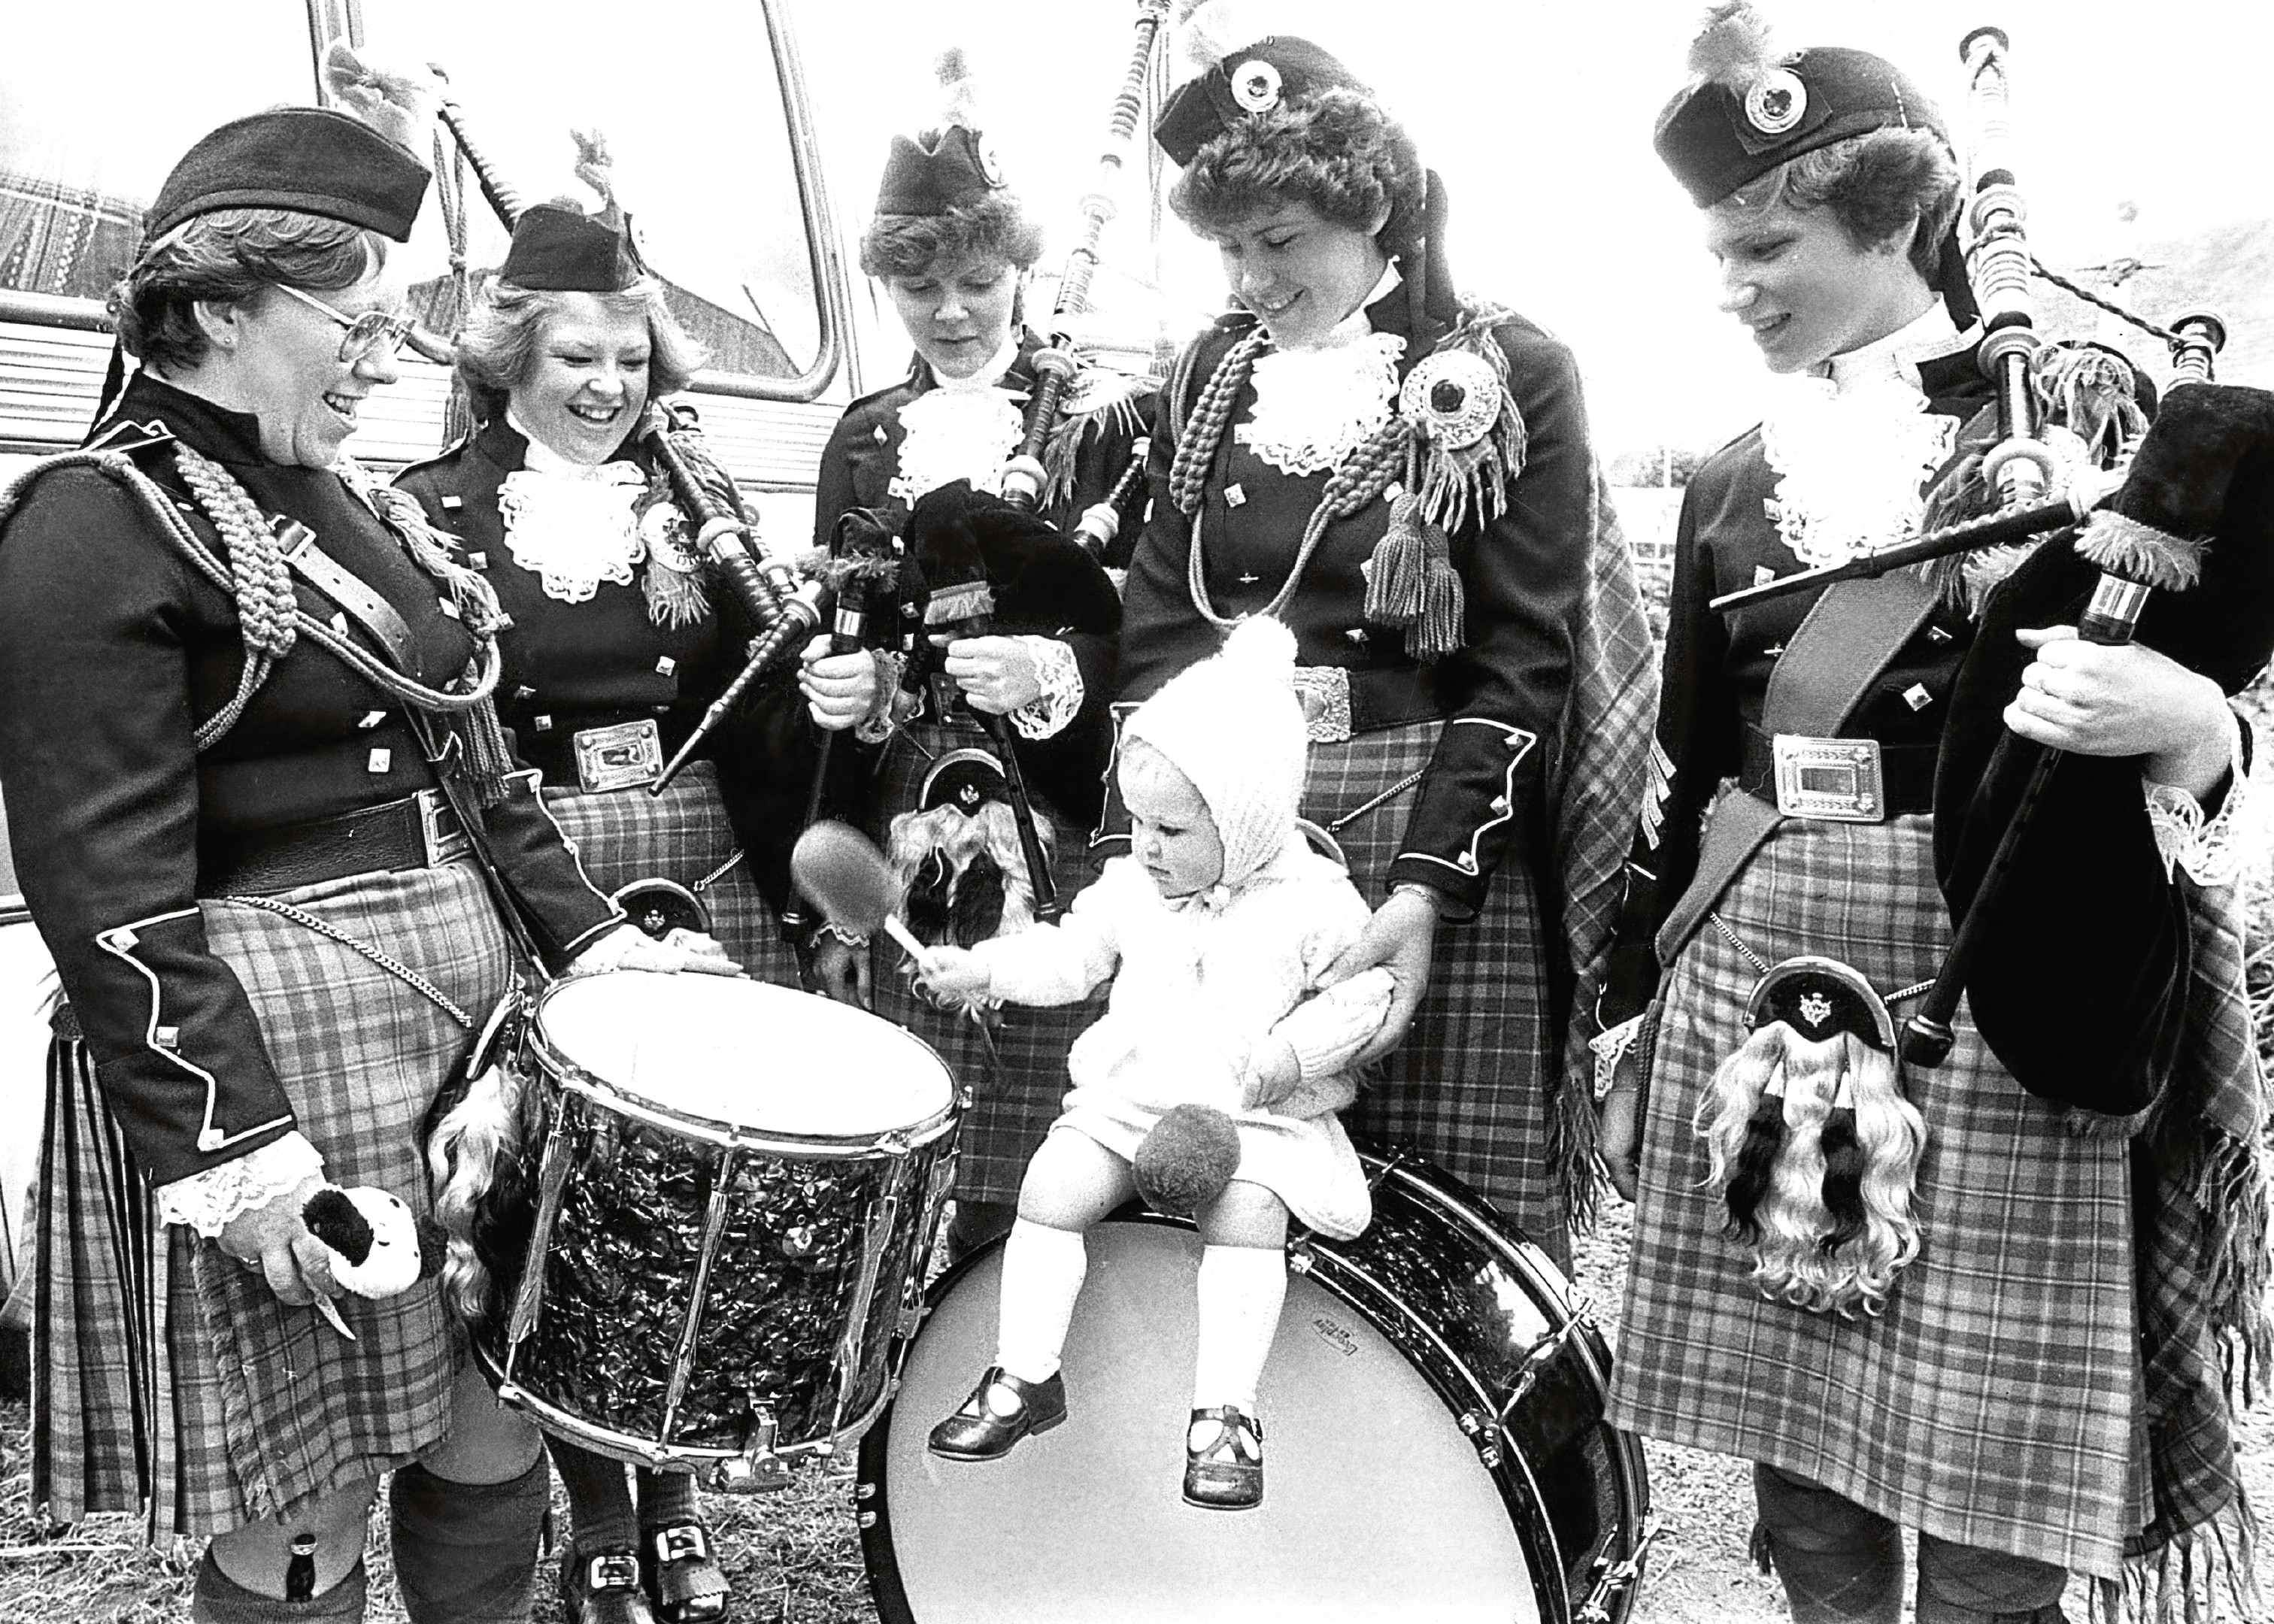 Bon Accord Ladies Pipe Band are joined by 18-month-old Wendy Carle as she plays the drums.